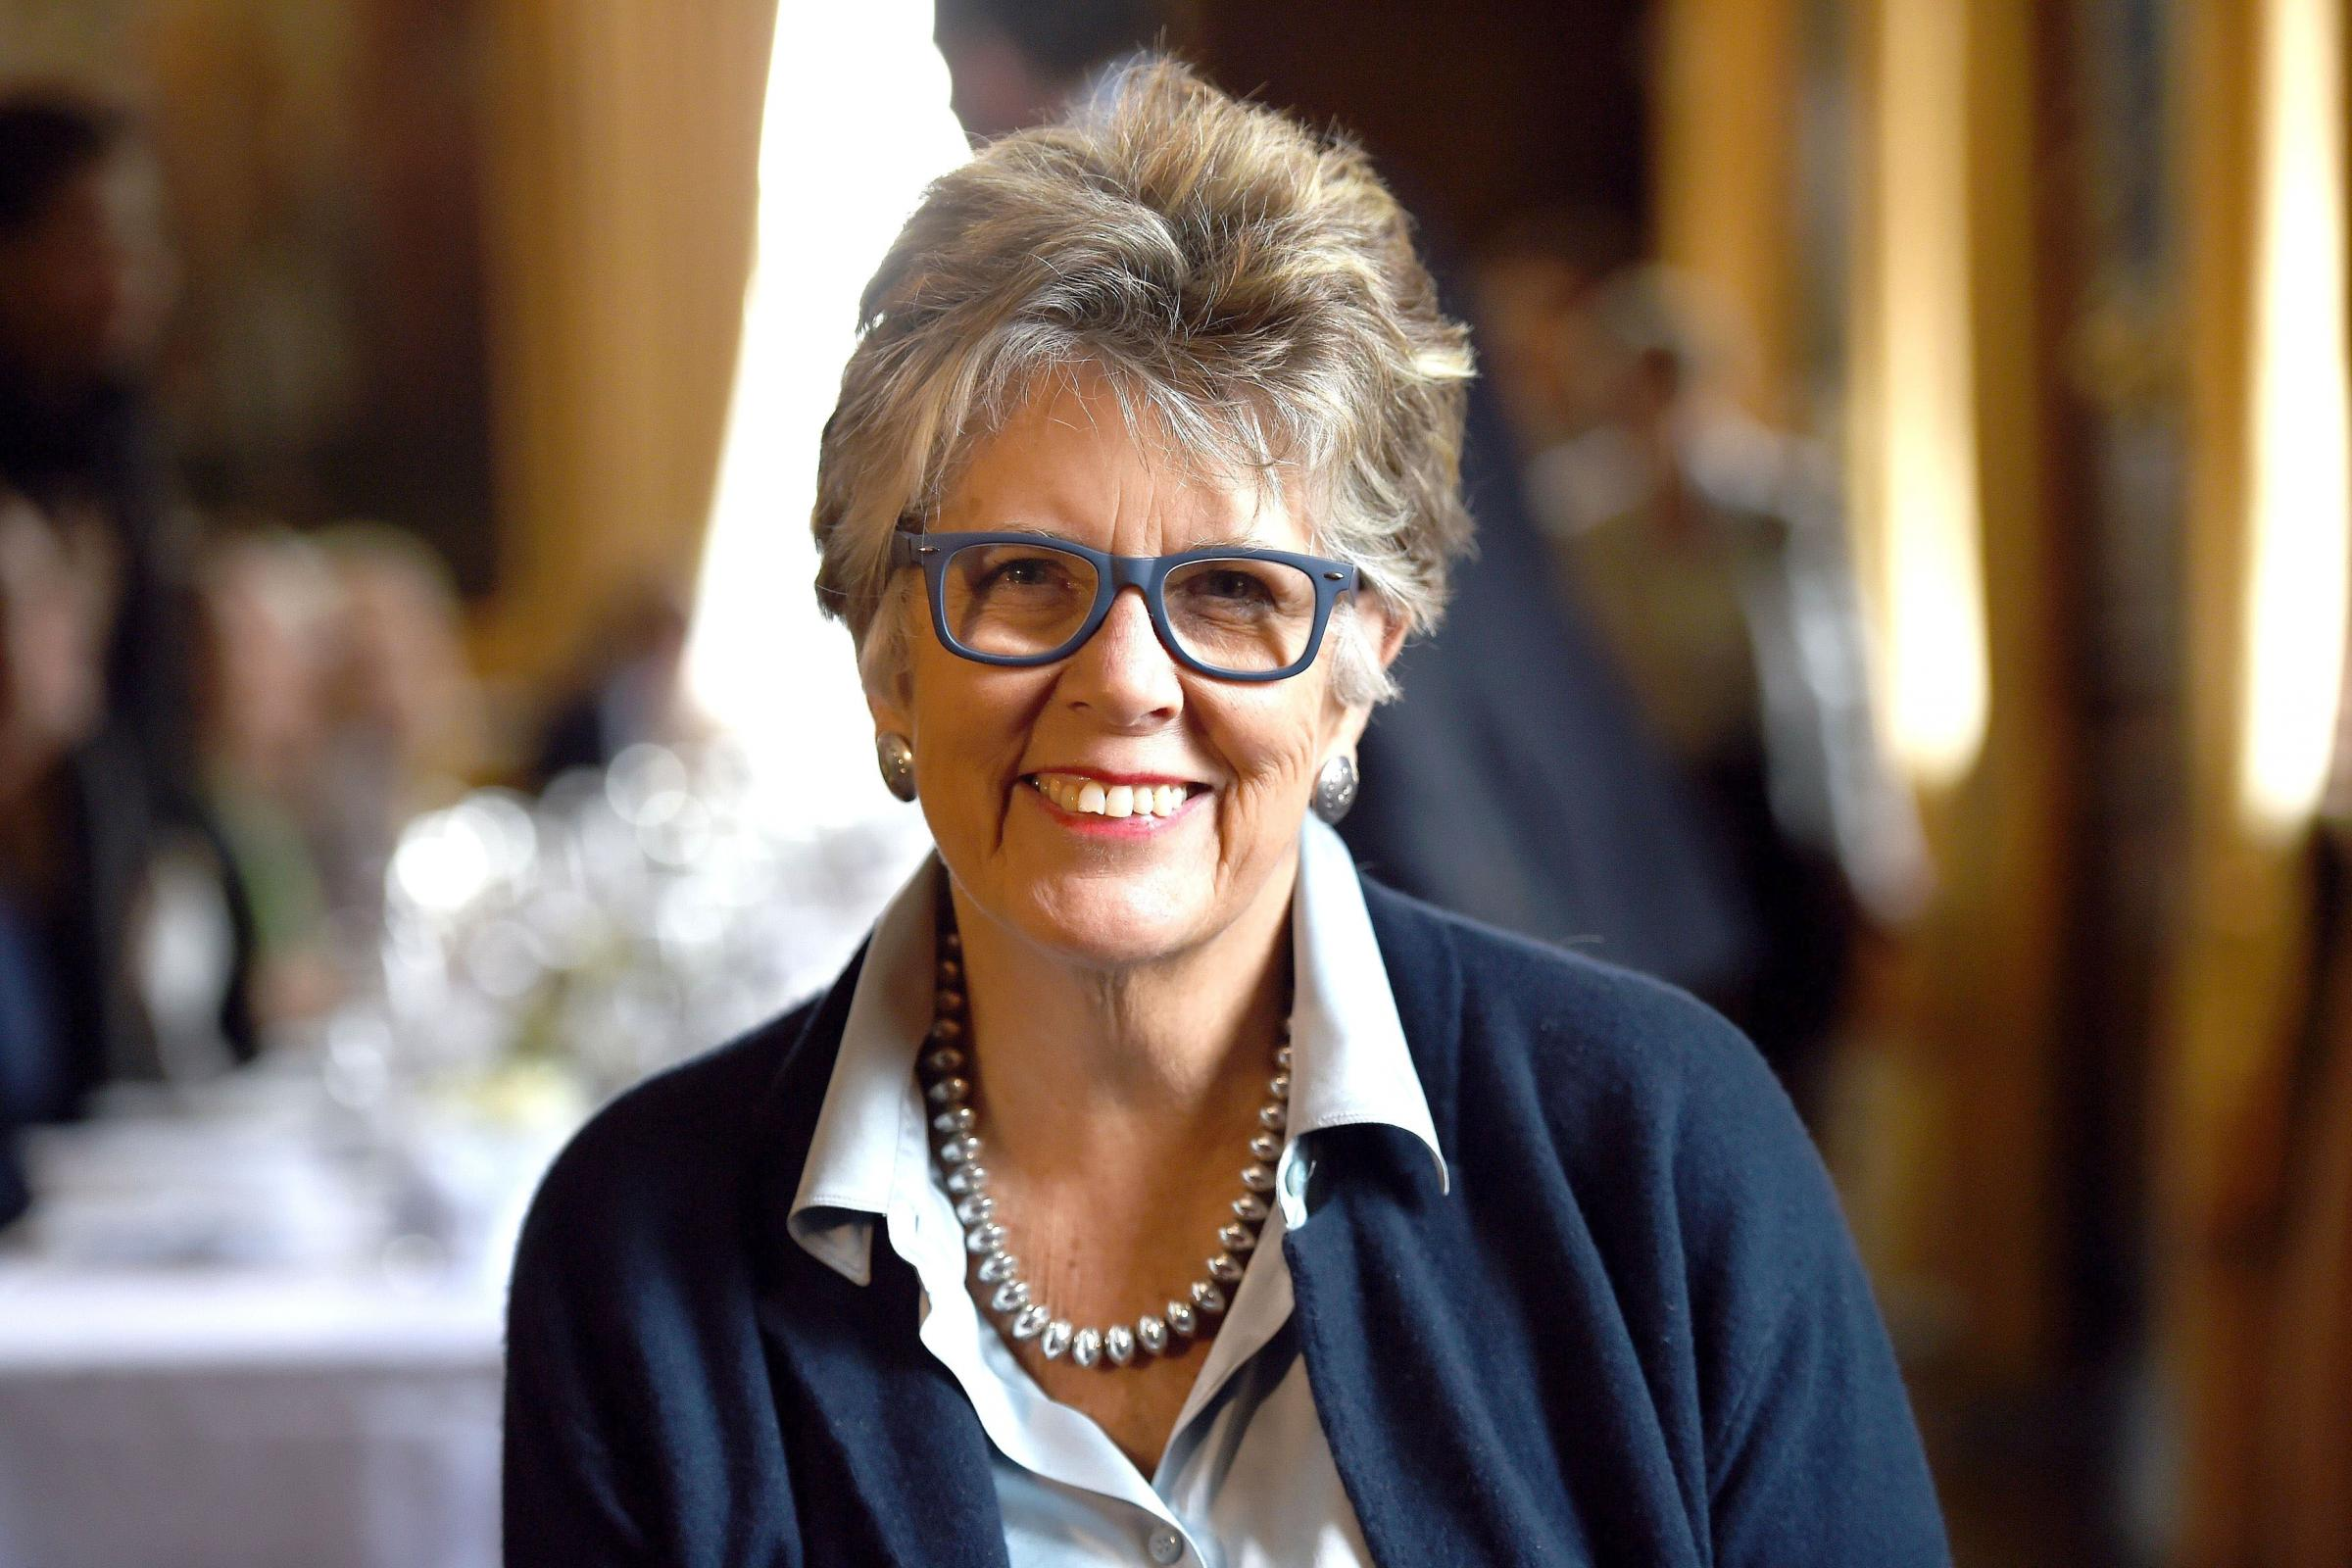 Prue Leith at an event